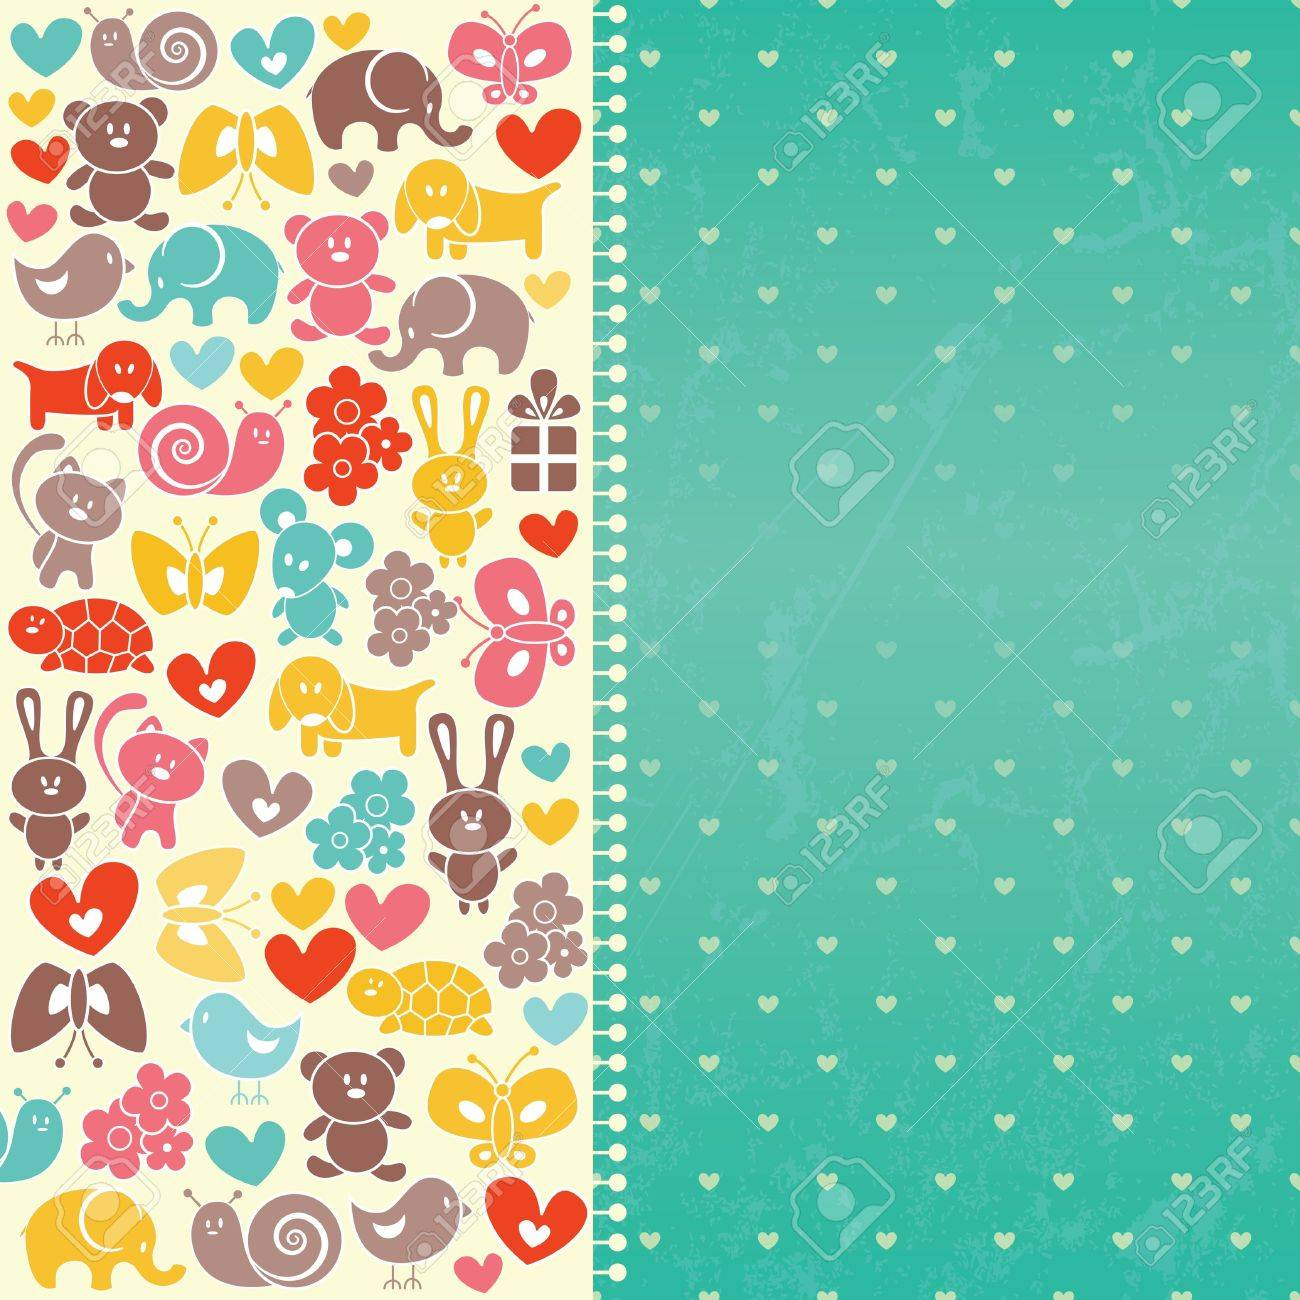 Baby blue background with place for text  EPS 10 vector illustration Stock Vector - 14786280